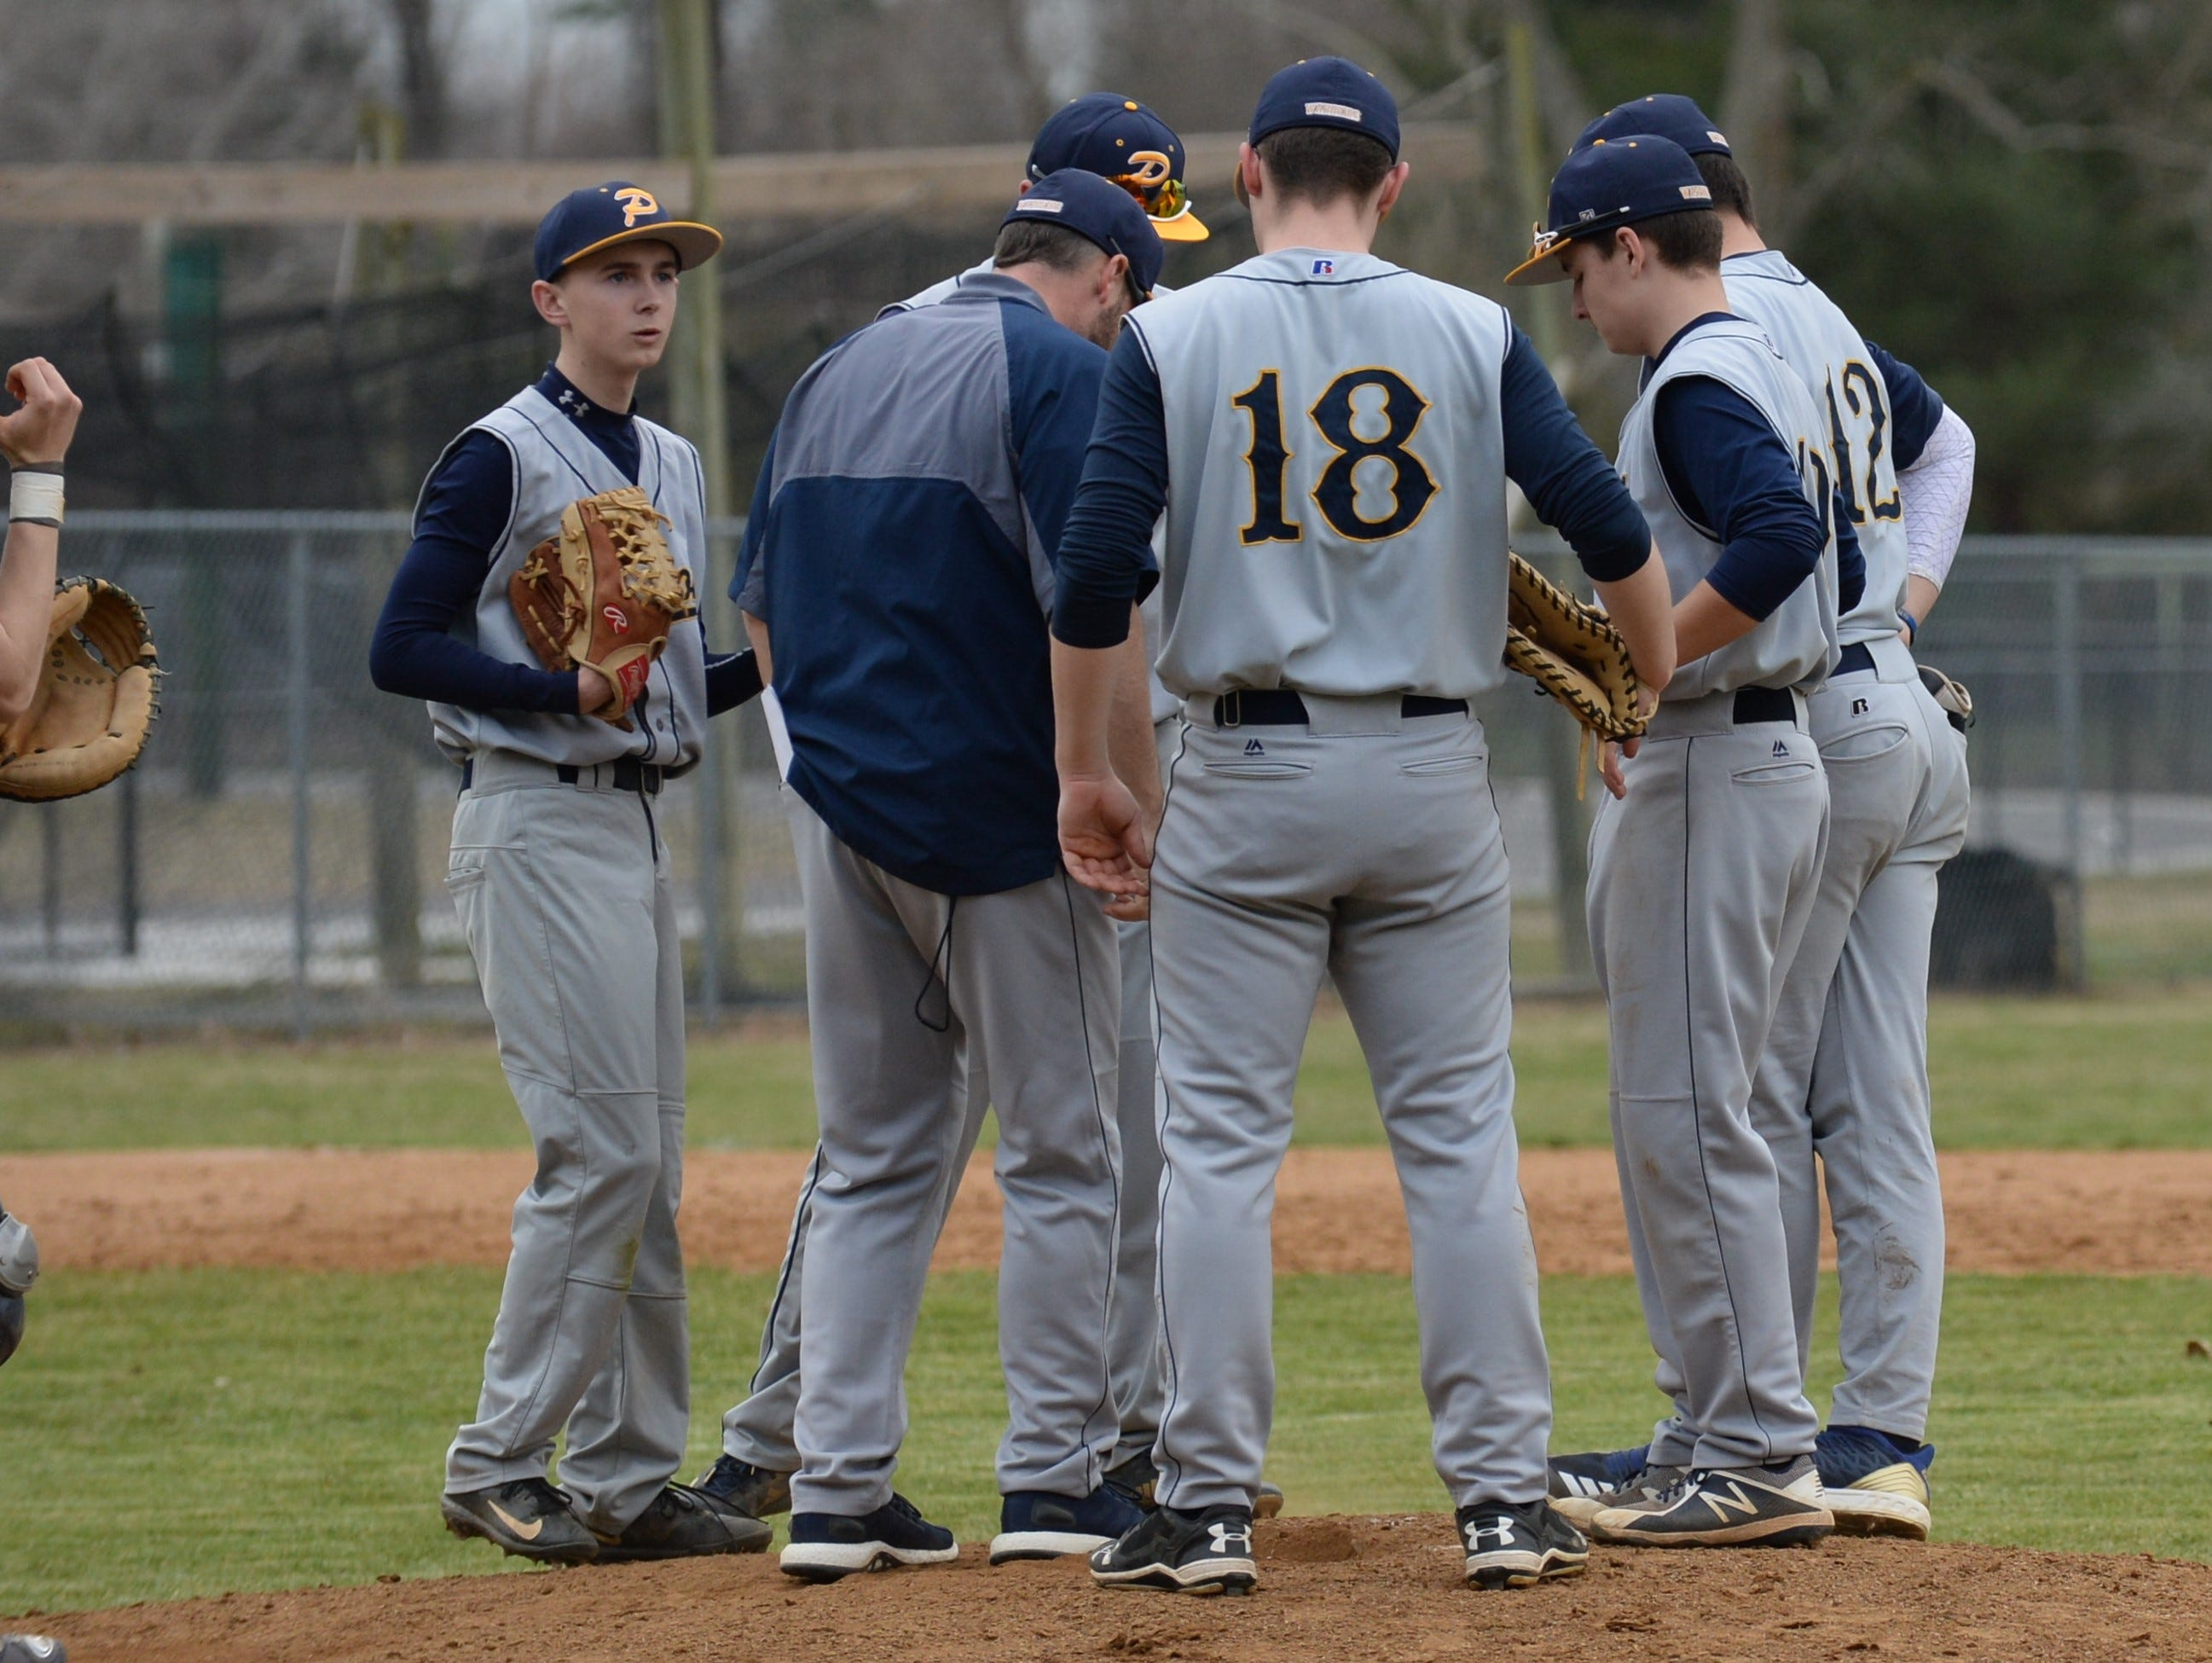 The Pocomoke infield meets at the mound against Mardela on Monday, March 25, 2019.